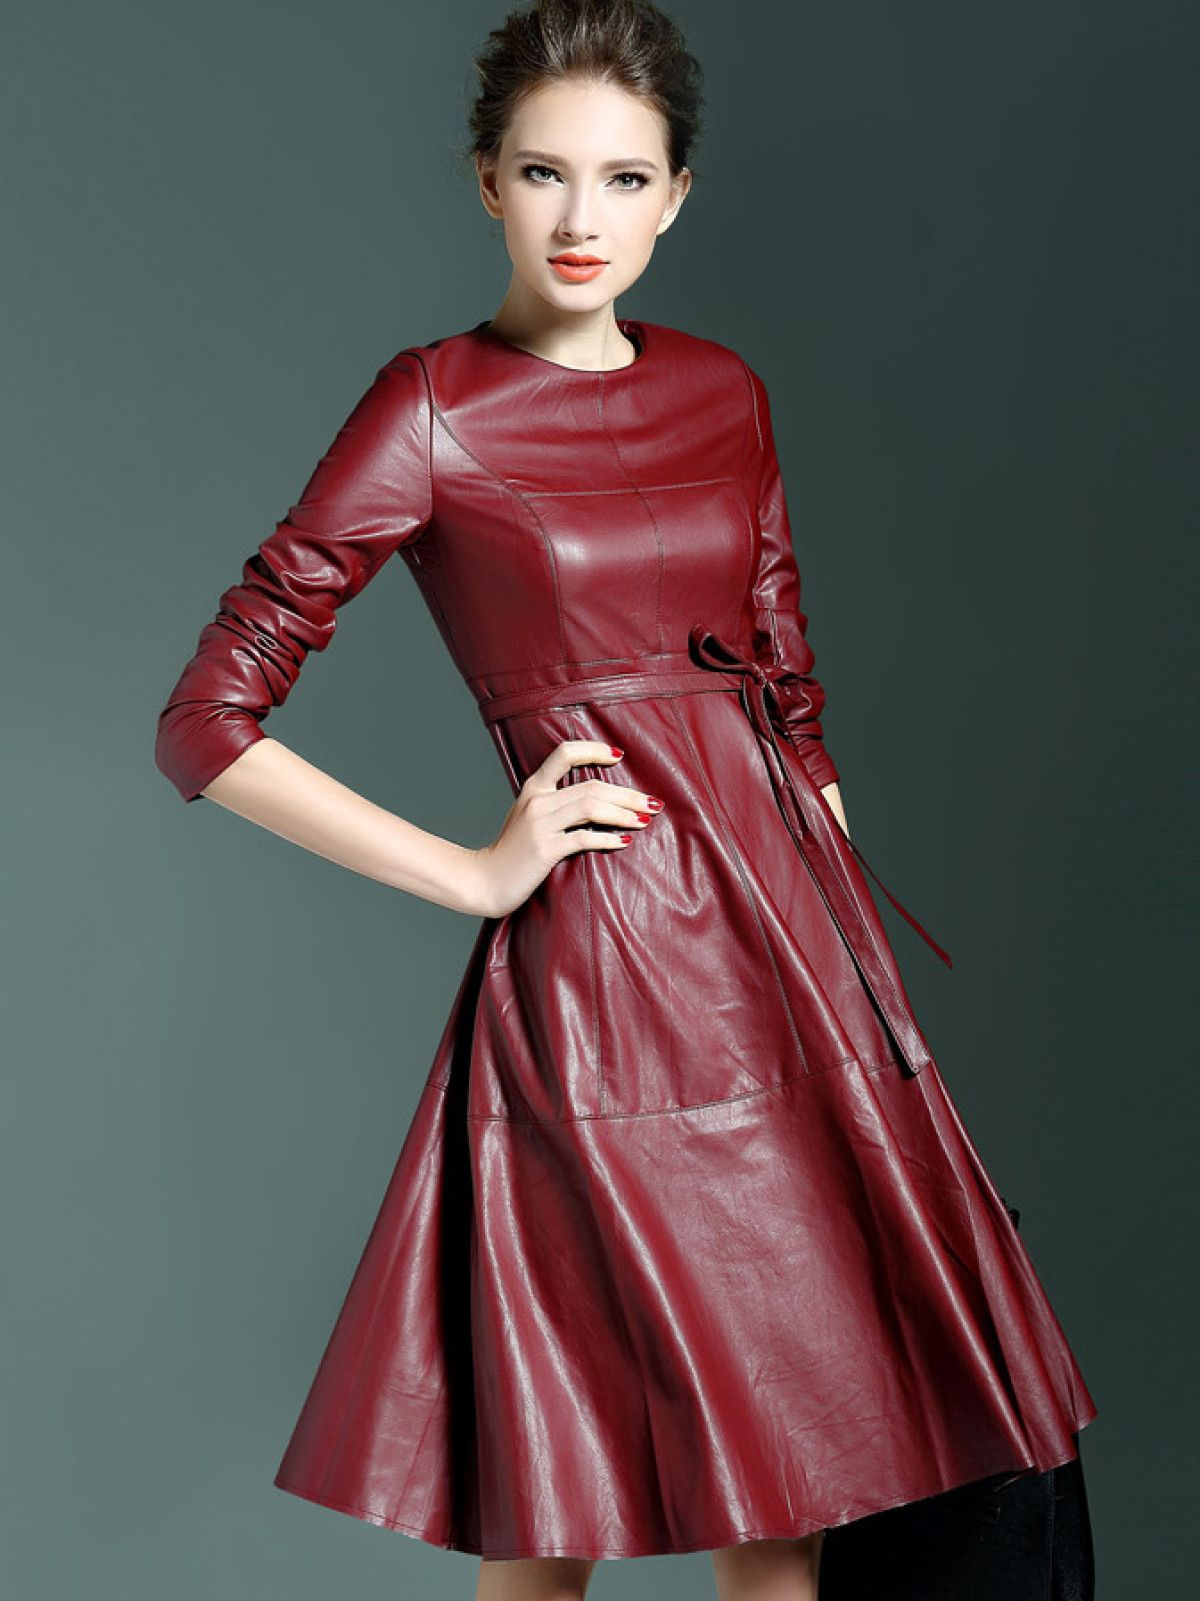 Win Red Round Neck Long Sleeve Tie-Waist Leather Dress in 2019 ... c26dacd2d